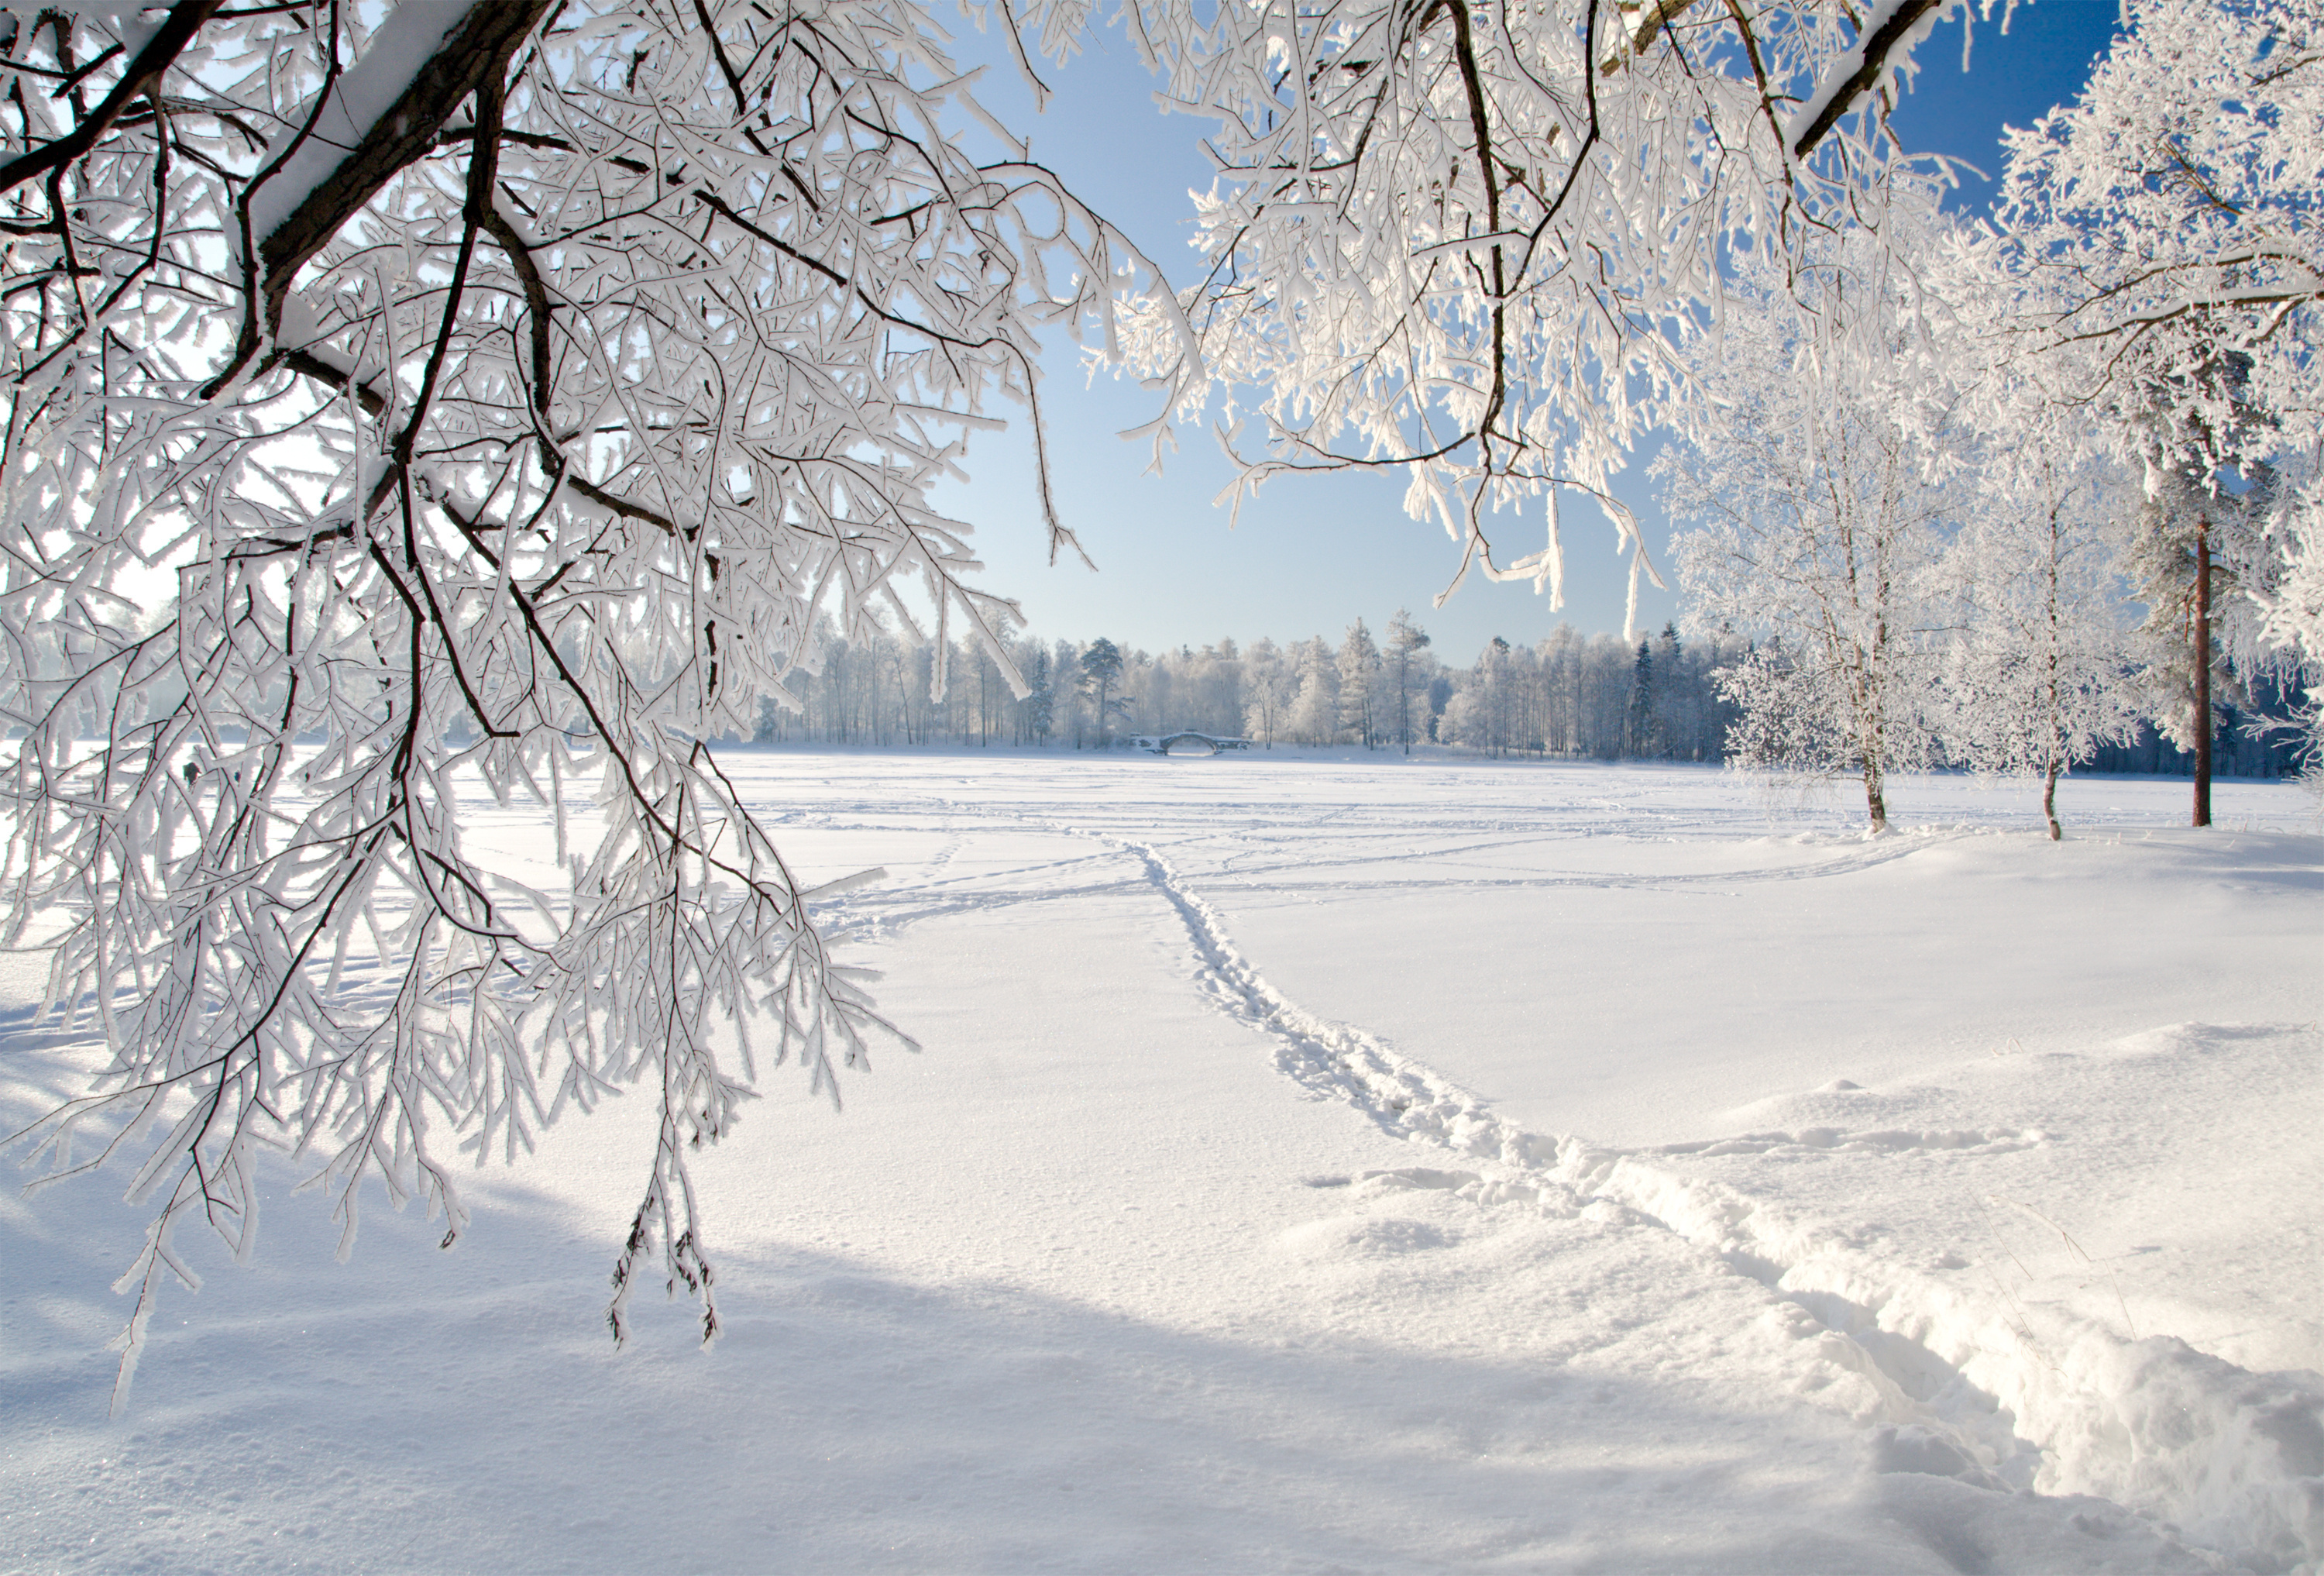 snowy nature wallpaper - photo #17